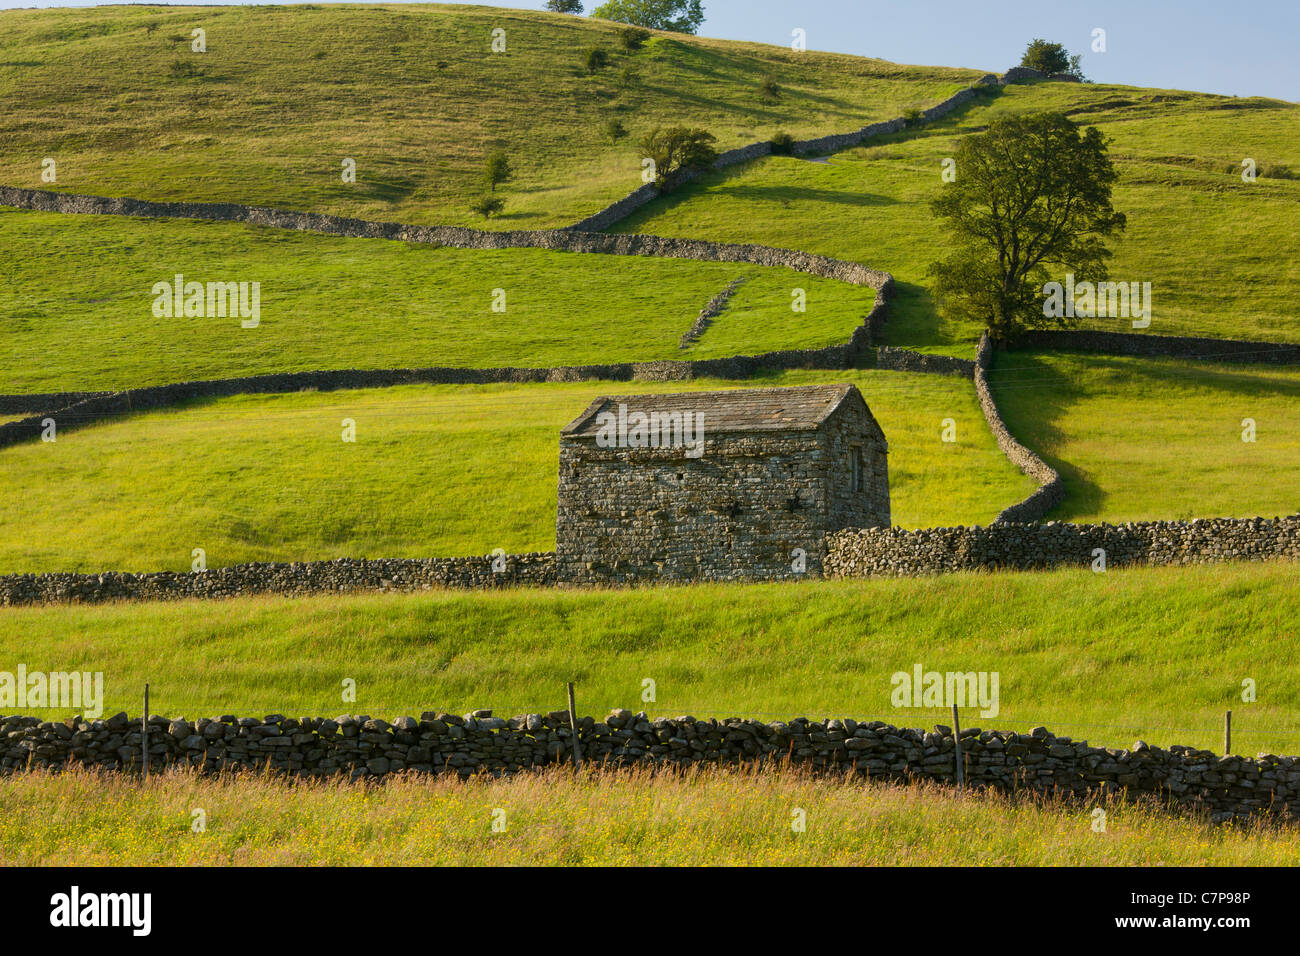 Barns and stone walls near Muker, Swaledale; Yorkshire Dales National Park; North Yorkshire. - Stock Image